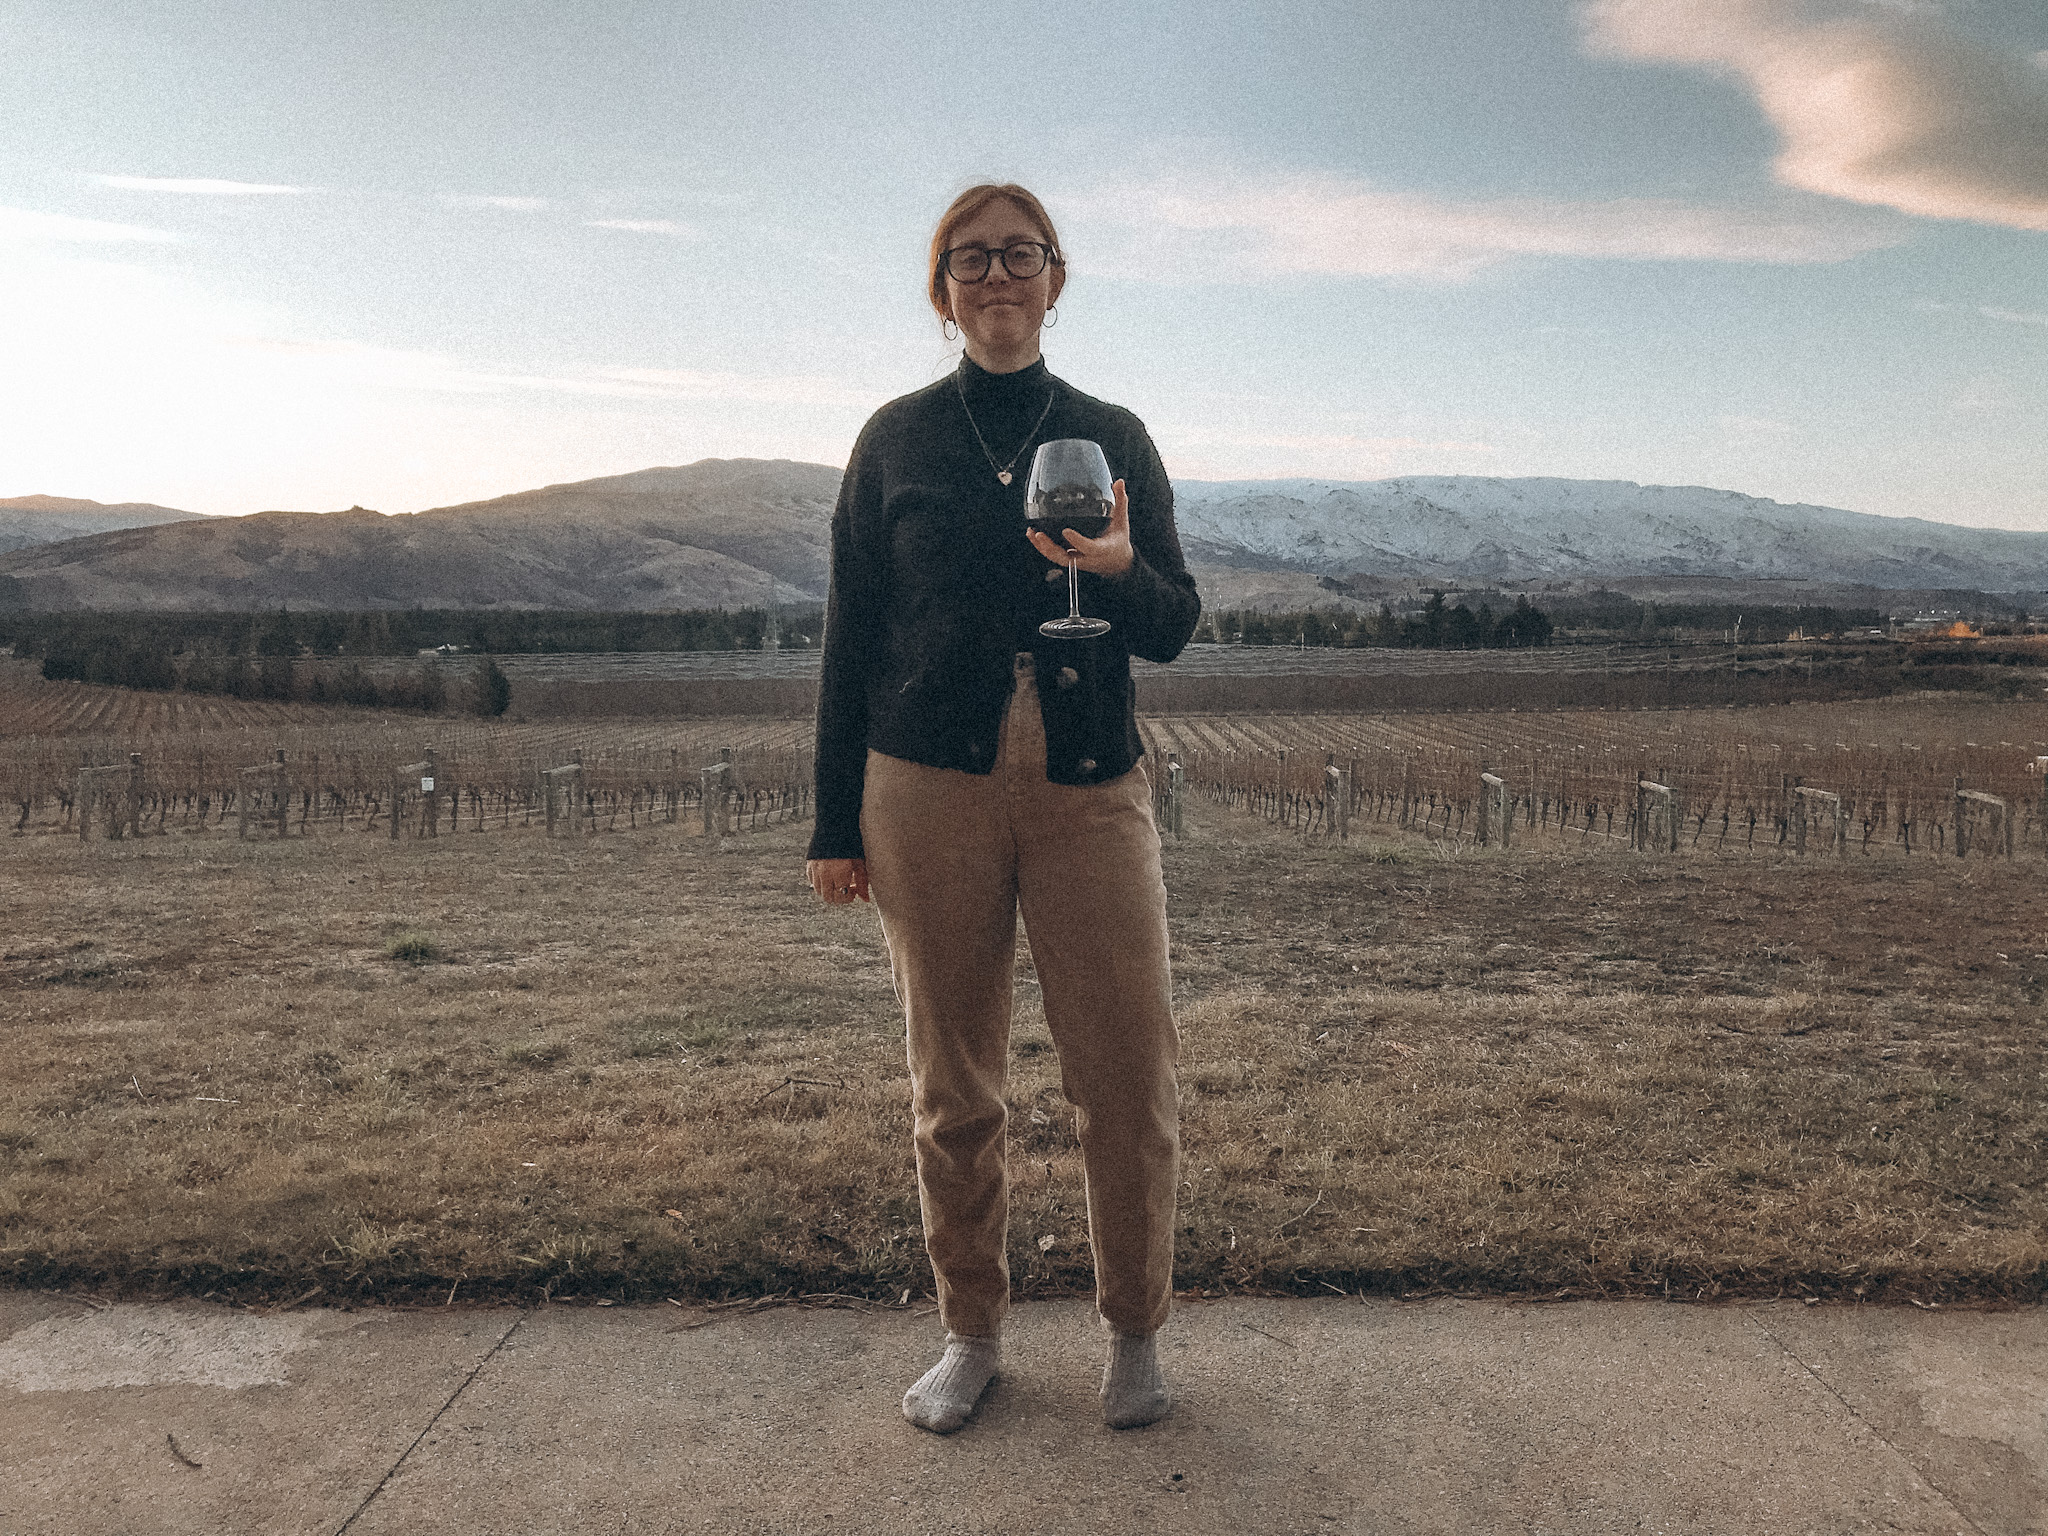 Amy is in a vineyard in new zealand wearing a black top and sand coloured trousers holding a large glass of red wine